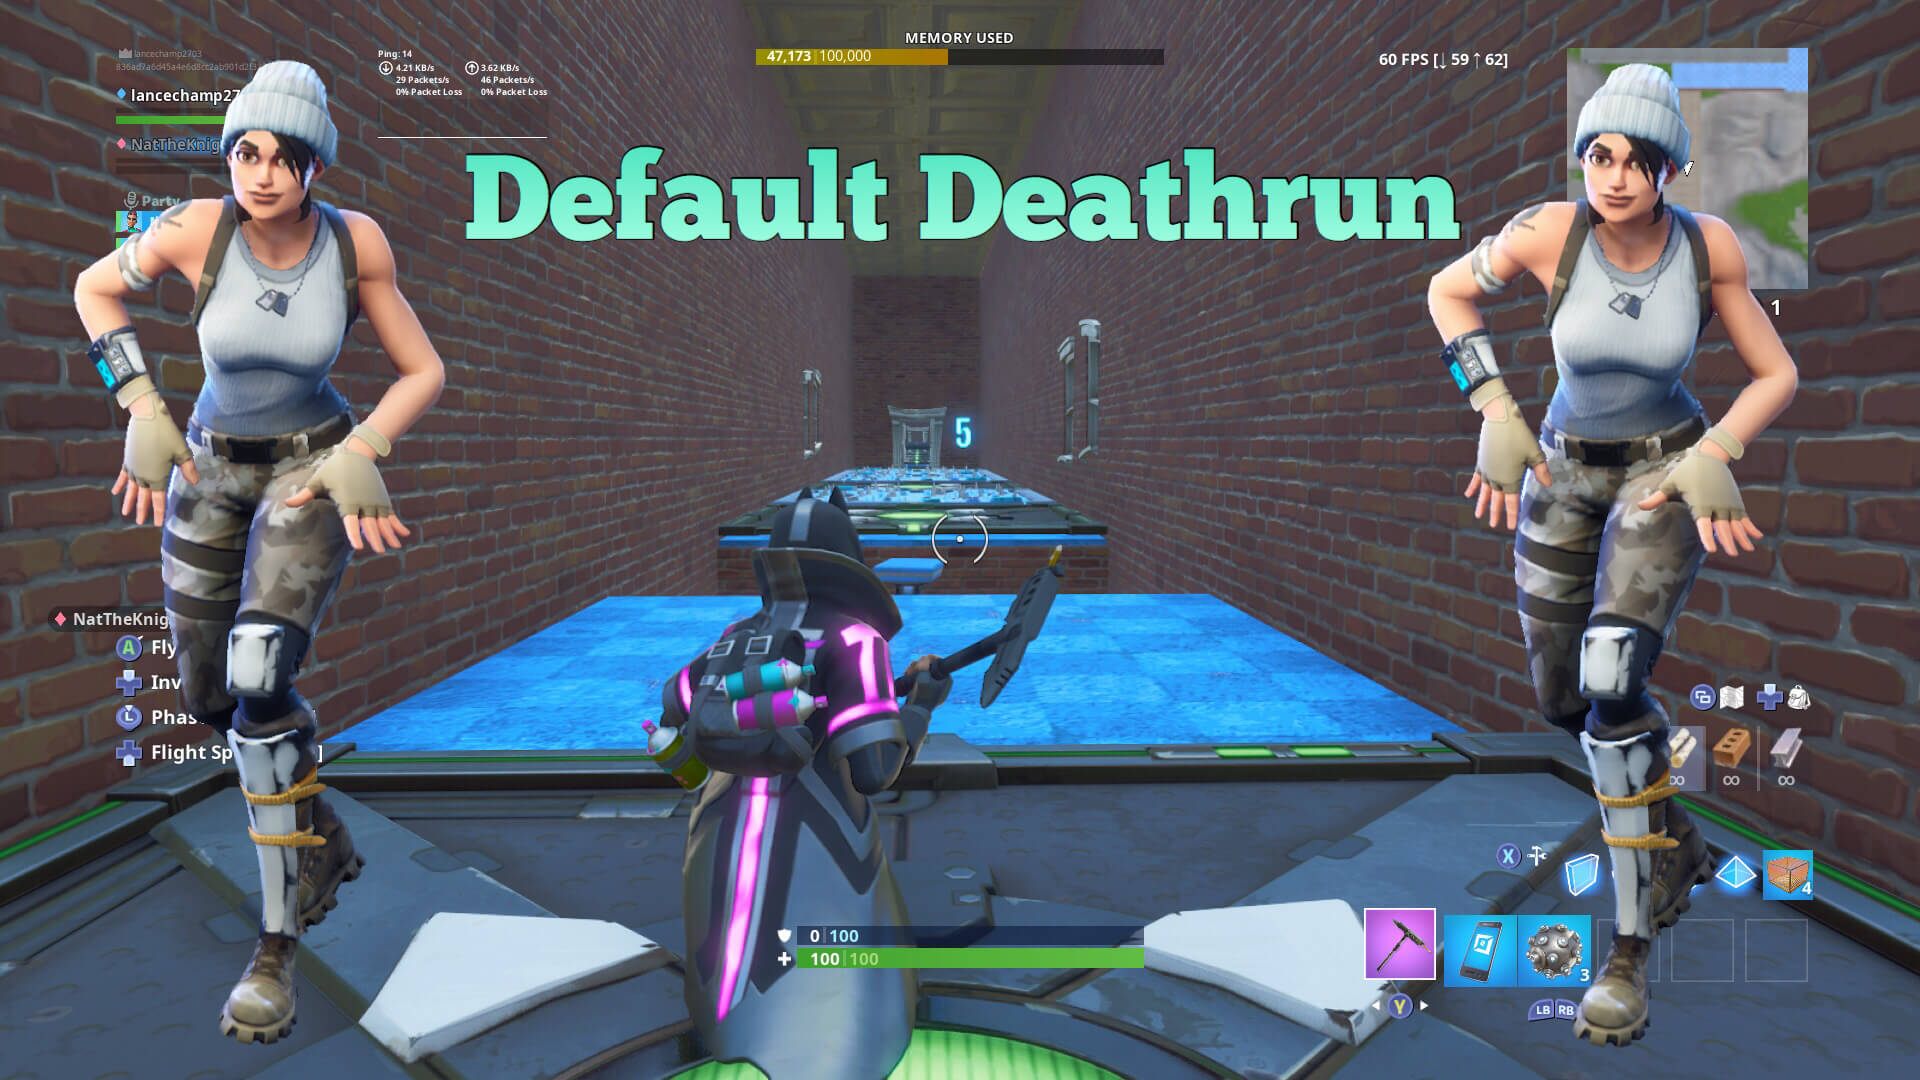 25 LEVEL INDOOR DEFAULT DEATHRUN